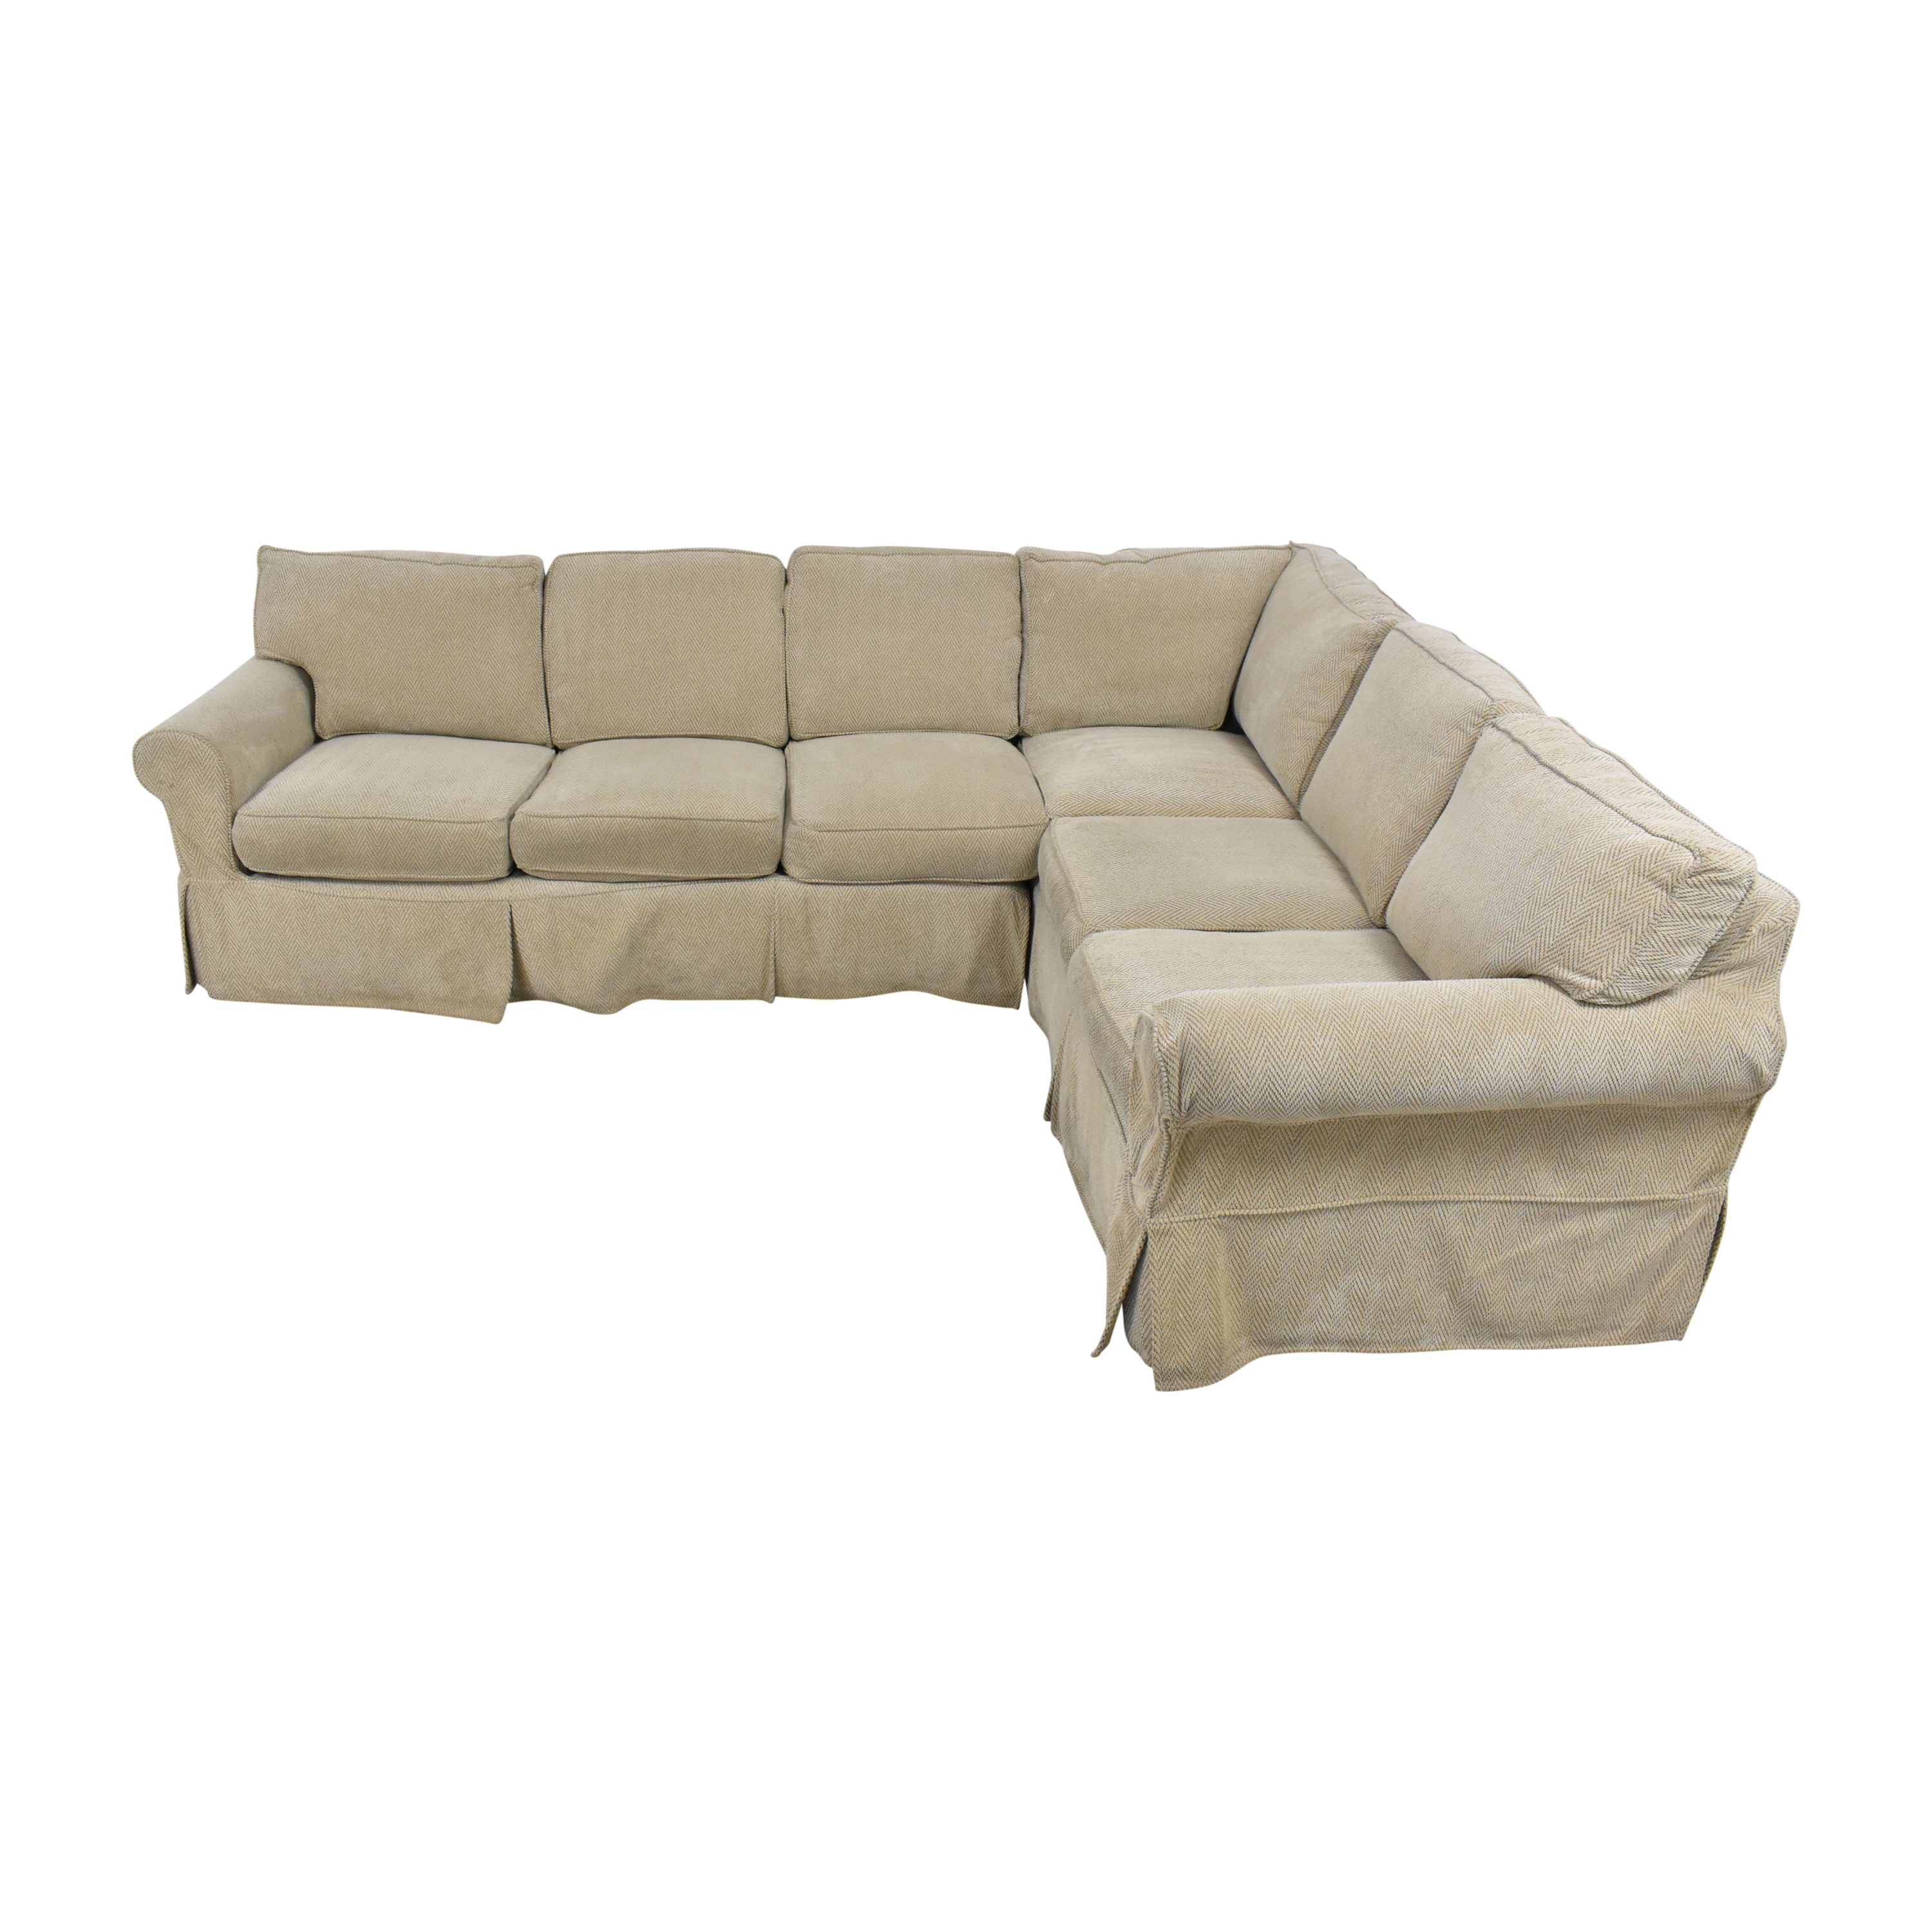 Country Willow Country Willow Vineyard Slipcovered Corner Sectional Sofa ct